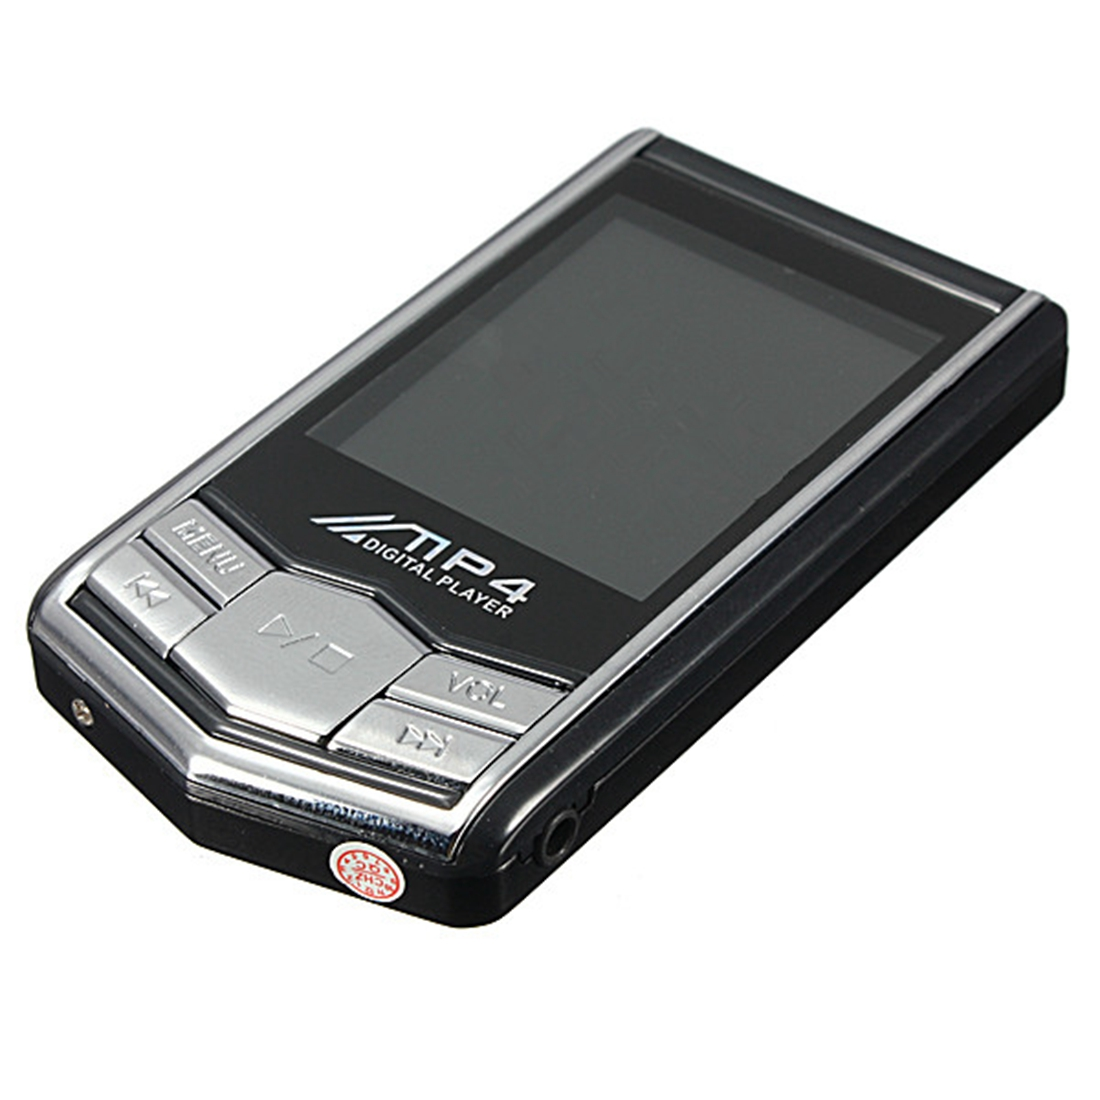 Mini Player 8GB MP3 MP4 LCD FM Radio Video Music Media Player Voice Recorder